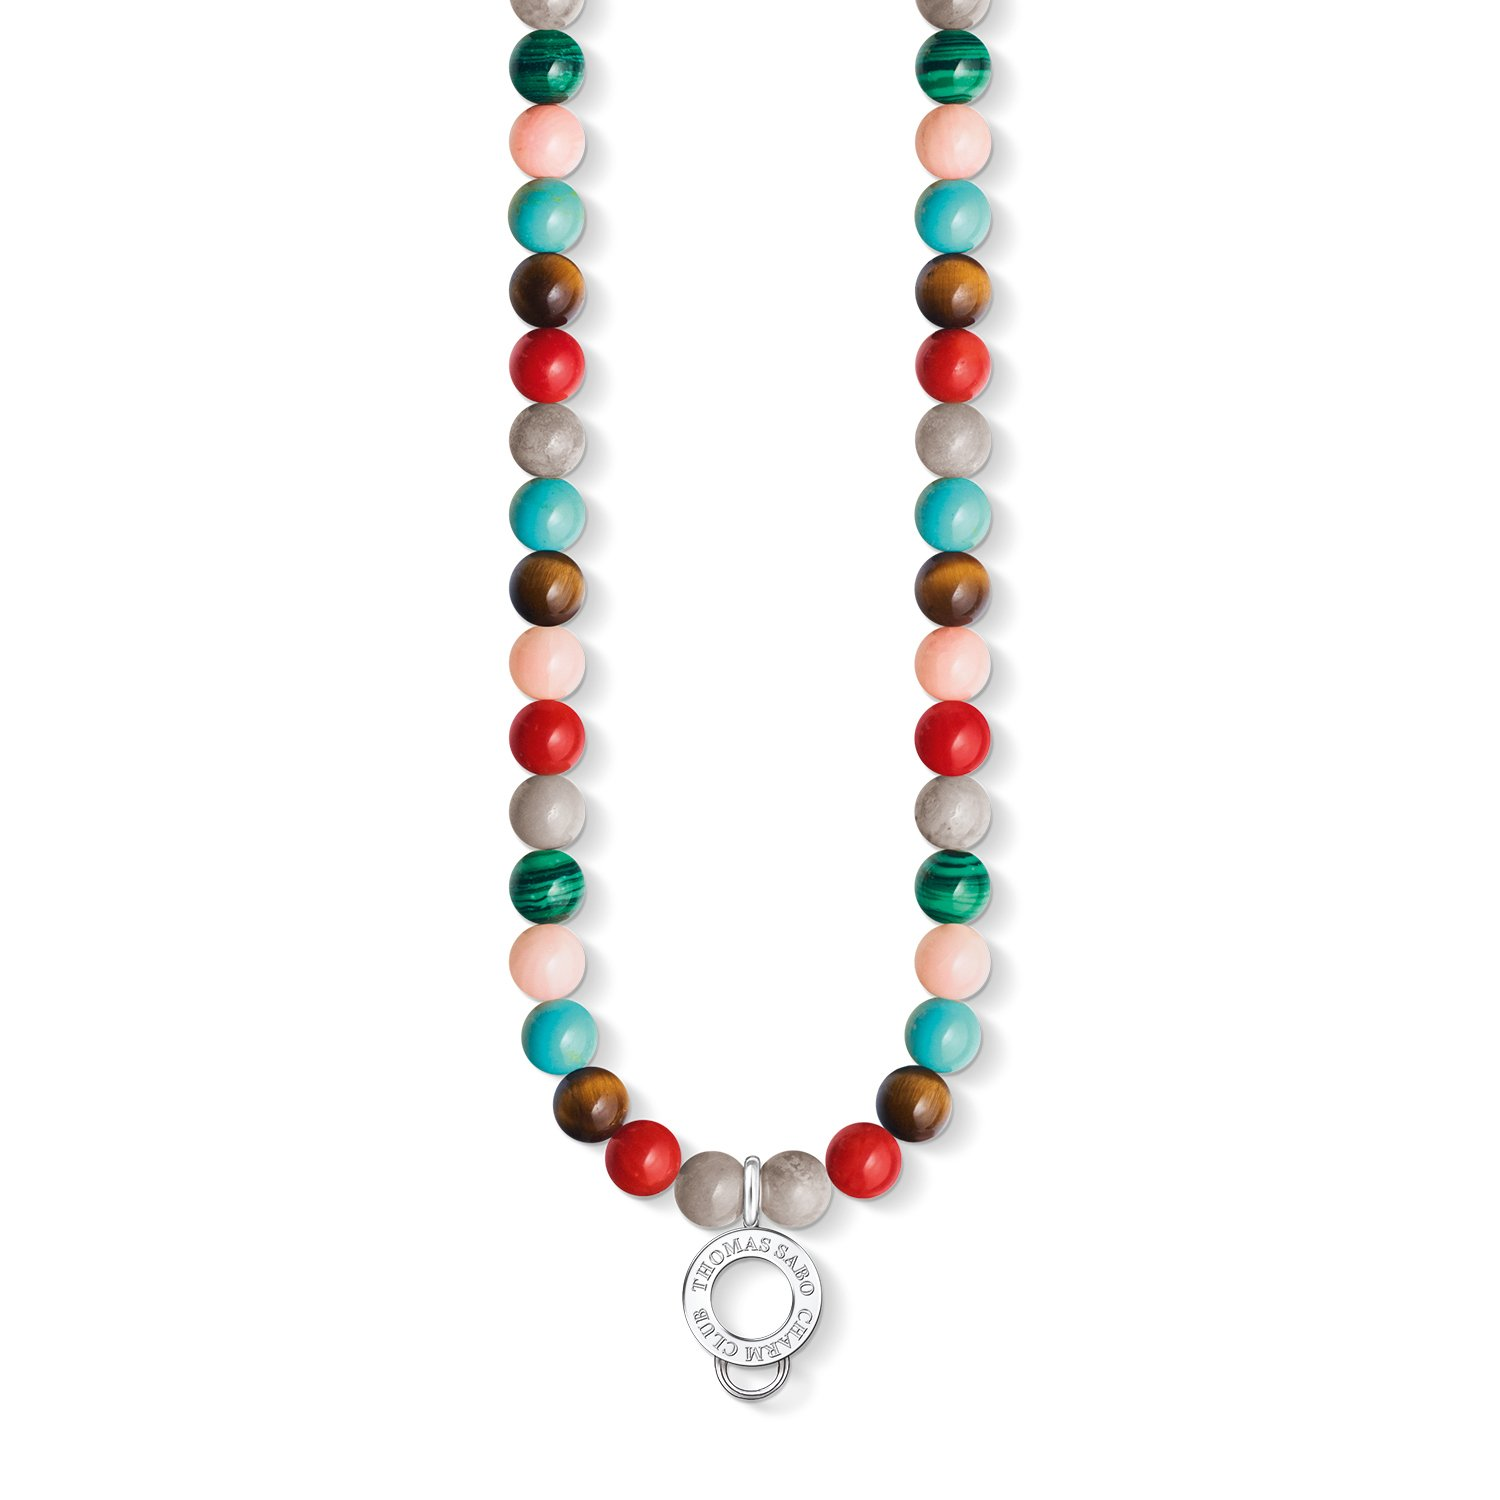 Thomas Sabo Necklace for Charms Colourful X0235-952-7 xsCMXE9cH